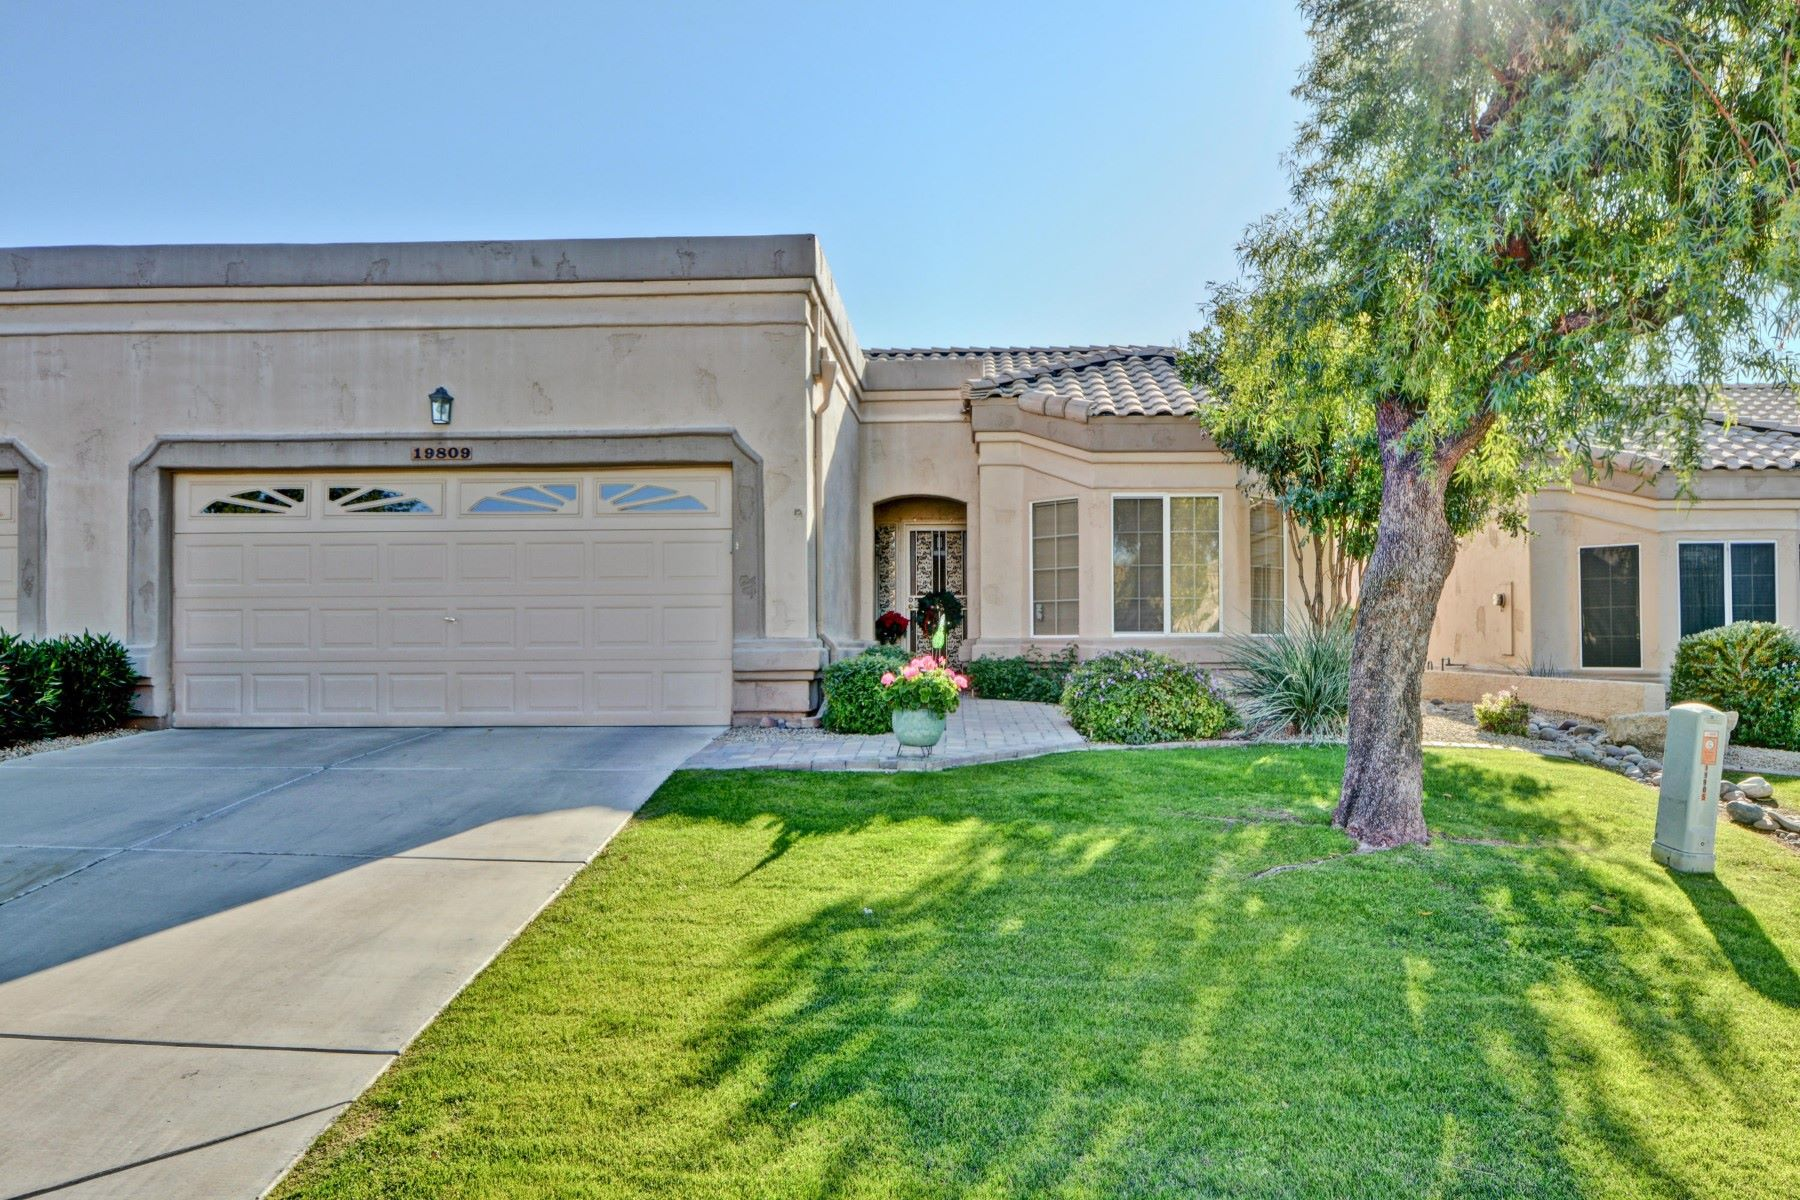 Single Family Homes por un Venta en Westbrook Village 19809 N 90th Avenue Peoria, Arizona 85382 Estados Unidos